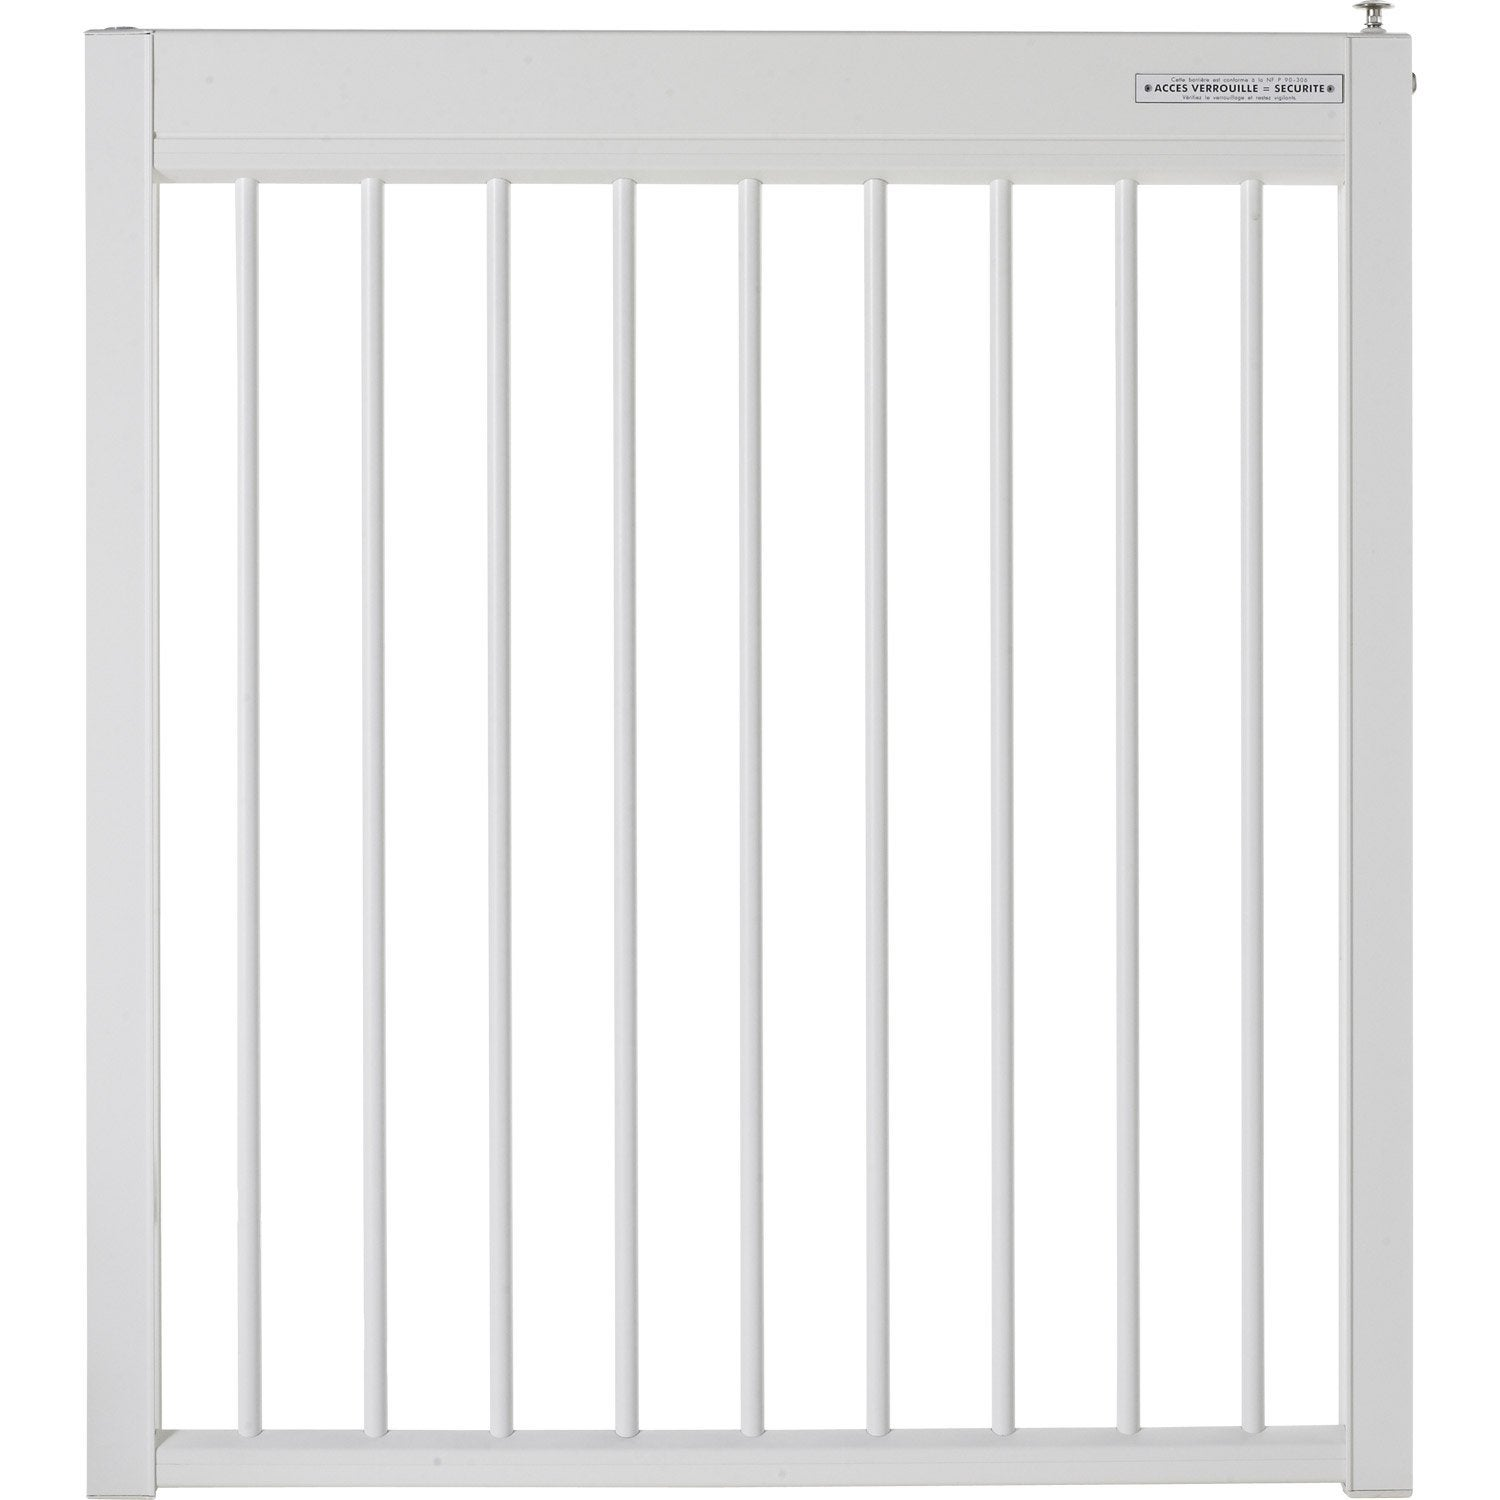 Barri re issambres en aluminium haut 120 x larg 107 cm leroy merlin - Barriere securite piscine leroy merlin ...